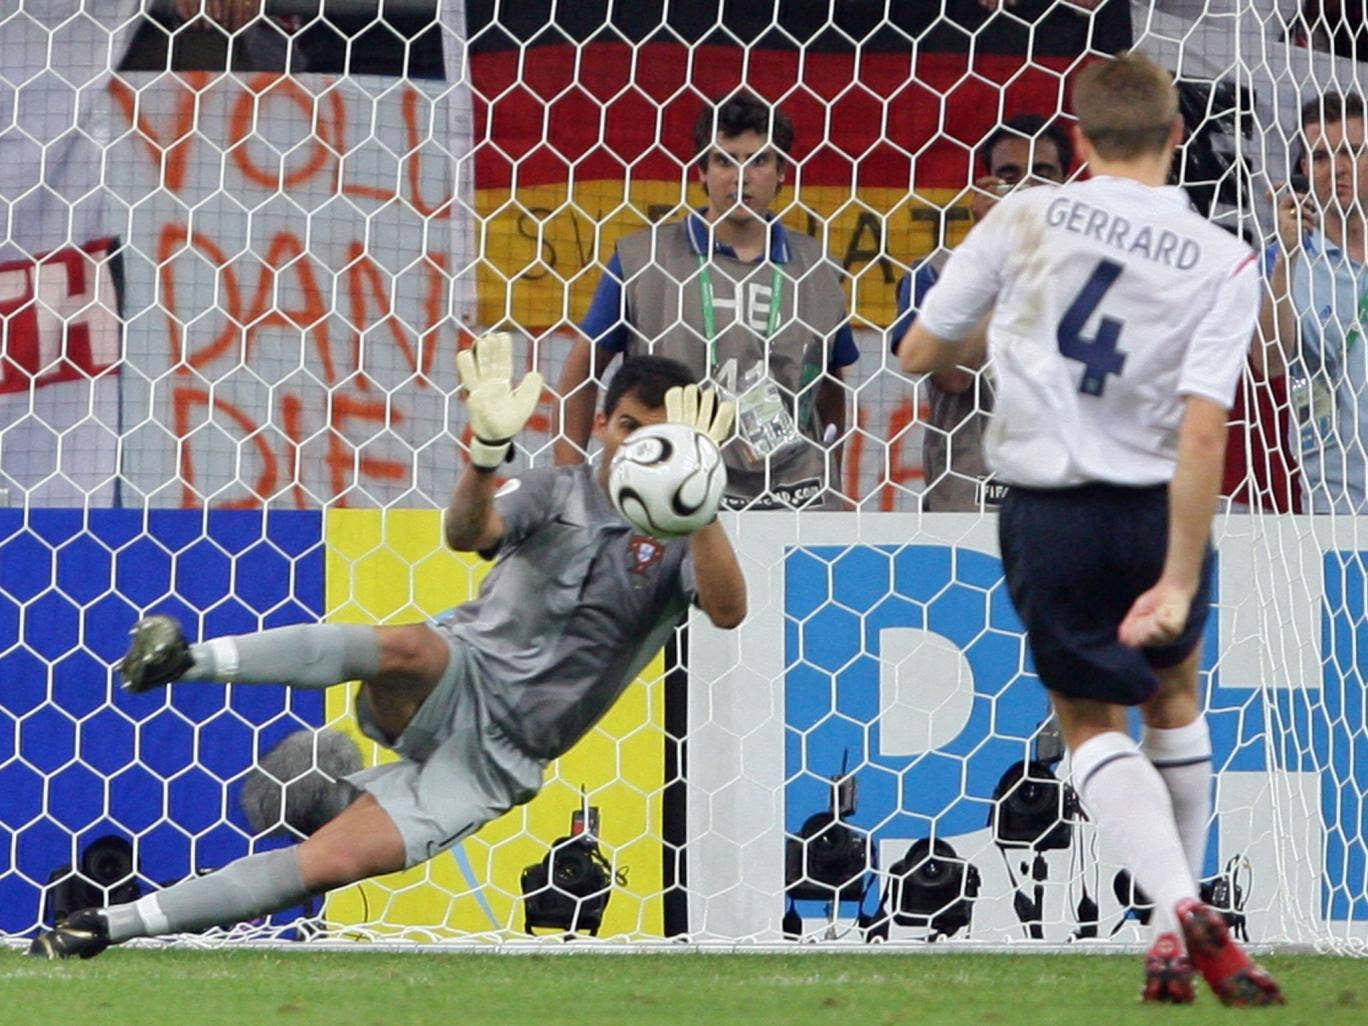 England's Steven Gerrard sees his penalty saved during a yet another heartbreaking shootout defeat at the hands of Portugal in the 2006 World Cup